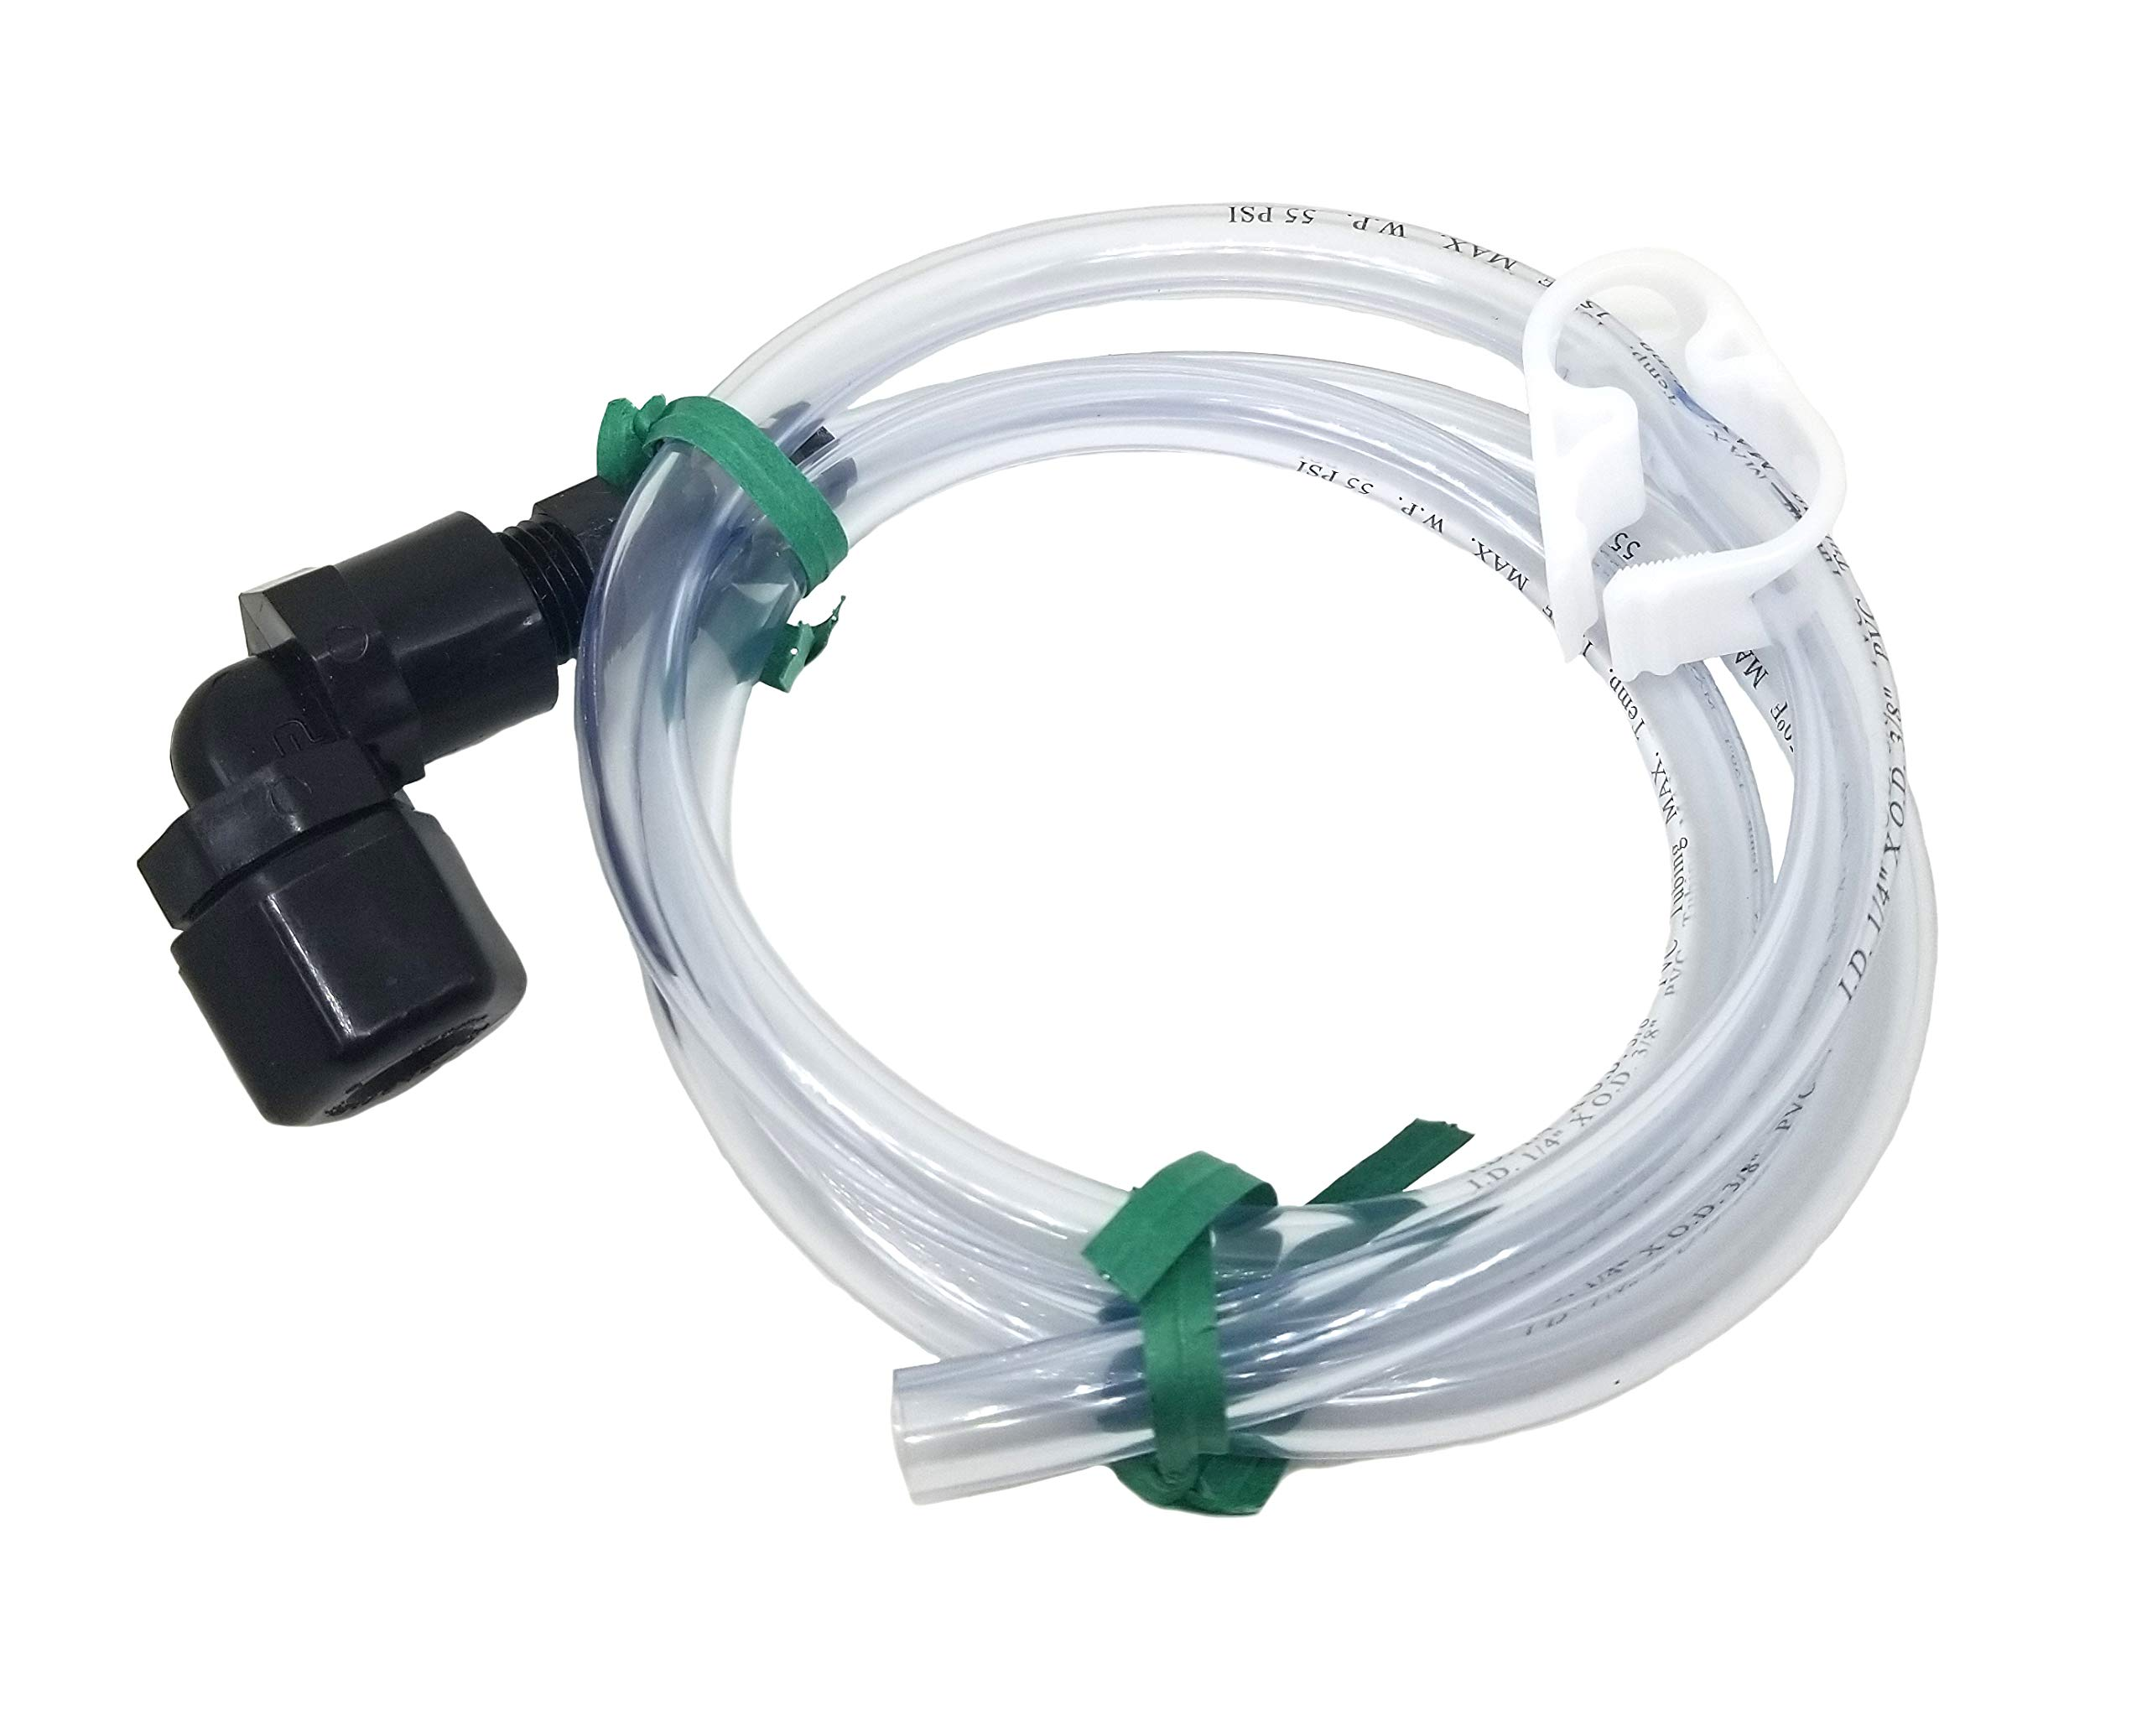 L & R Ultrasonic Drain Hose with Clamp